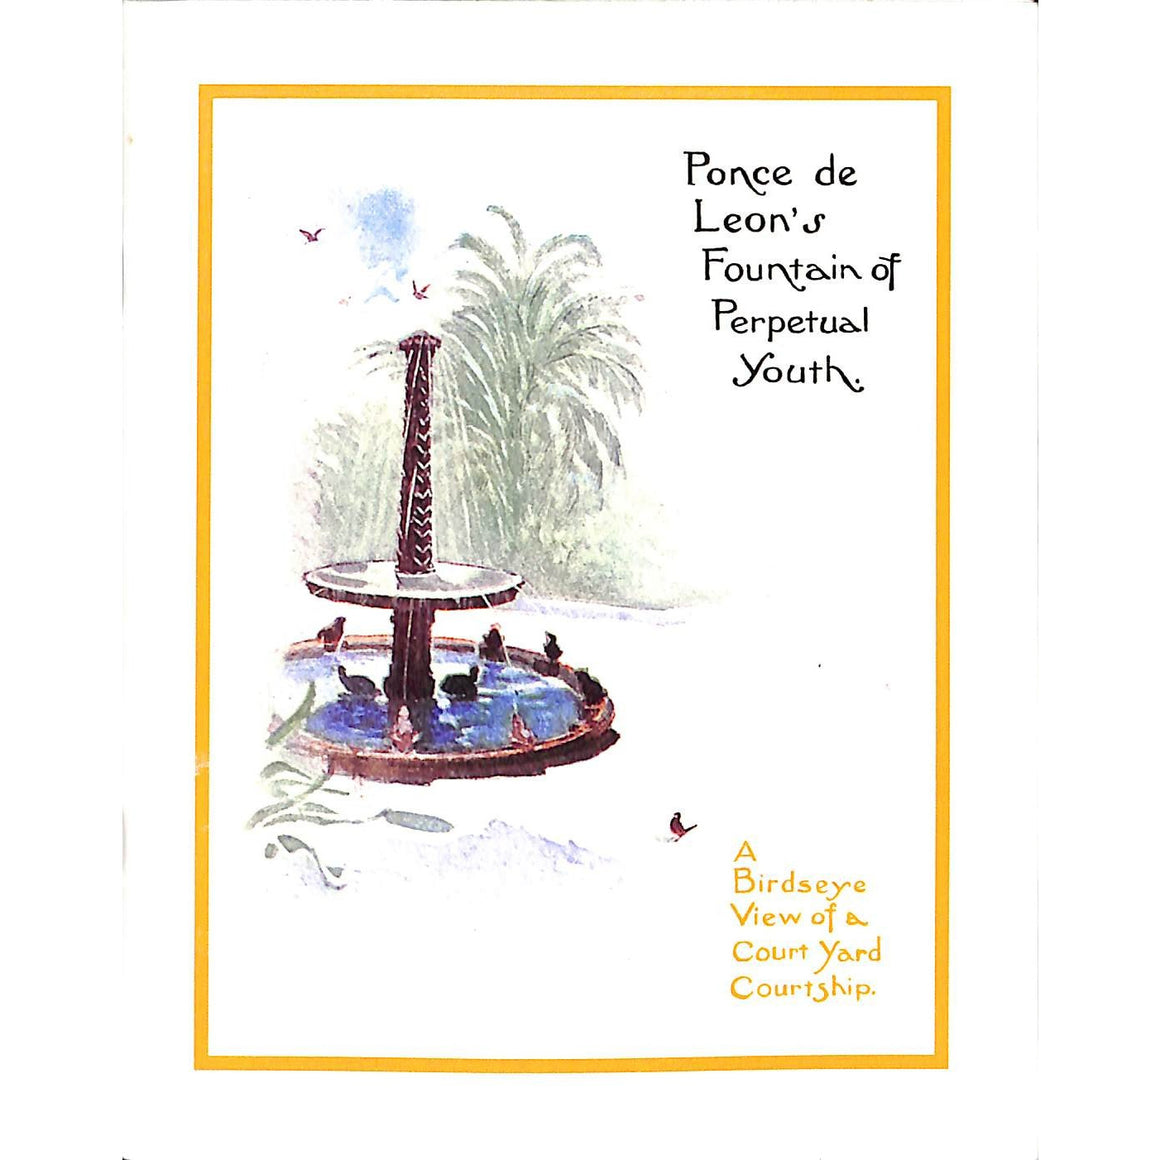 Ponce de Leon's Fountain of Perpetual Youth: A Birdseye View of a Court Yard Courtship